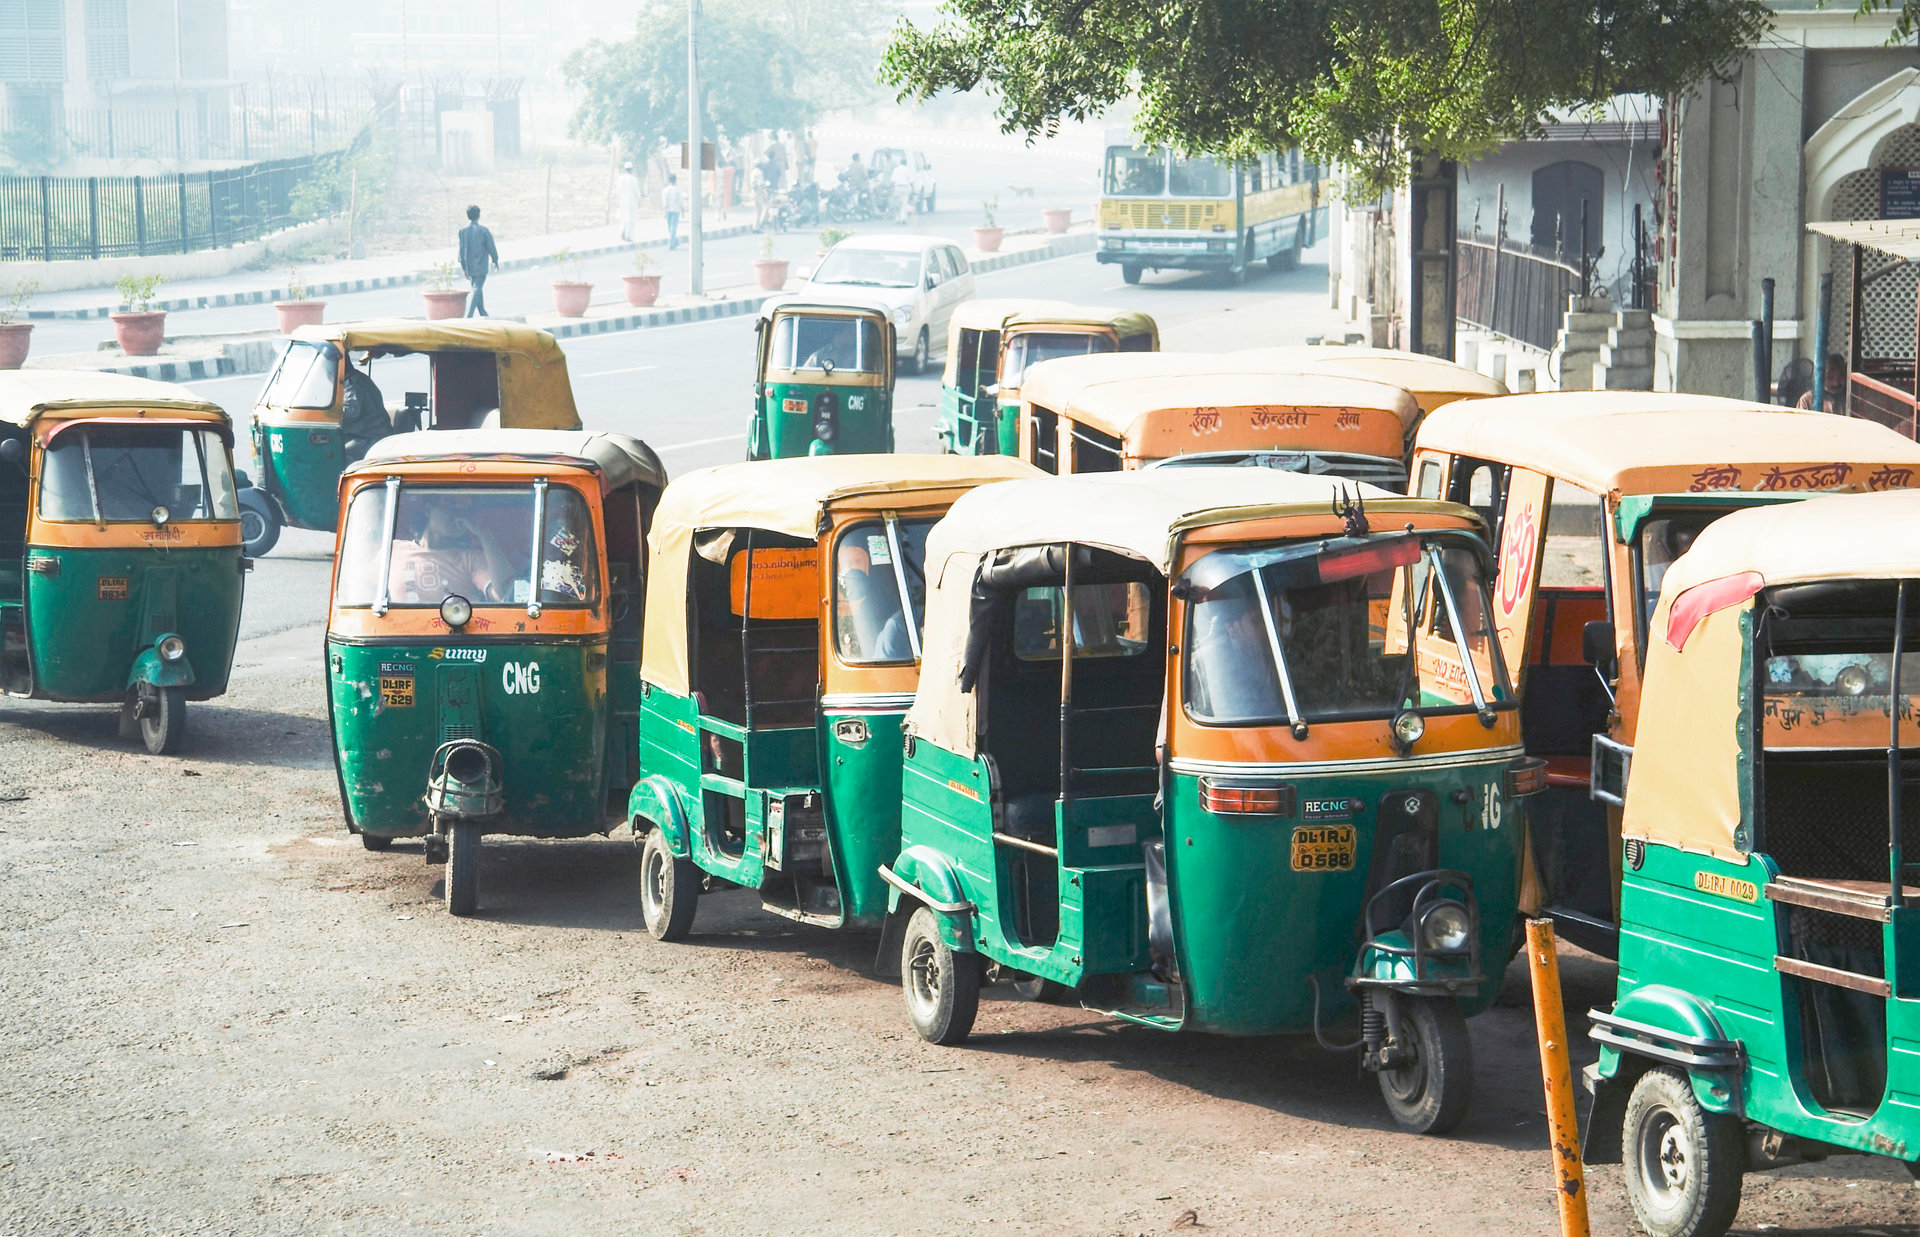 © © AdobeStock_3252303_Galyna Andrushko (transport in new delhi)